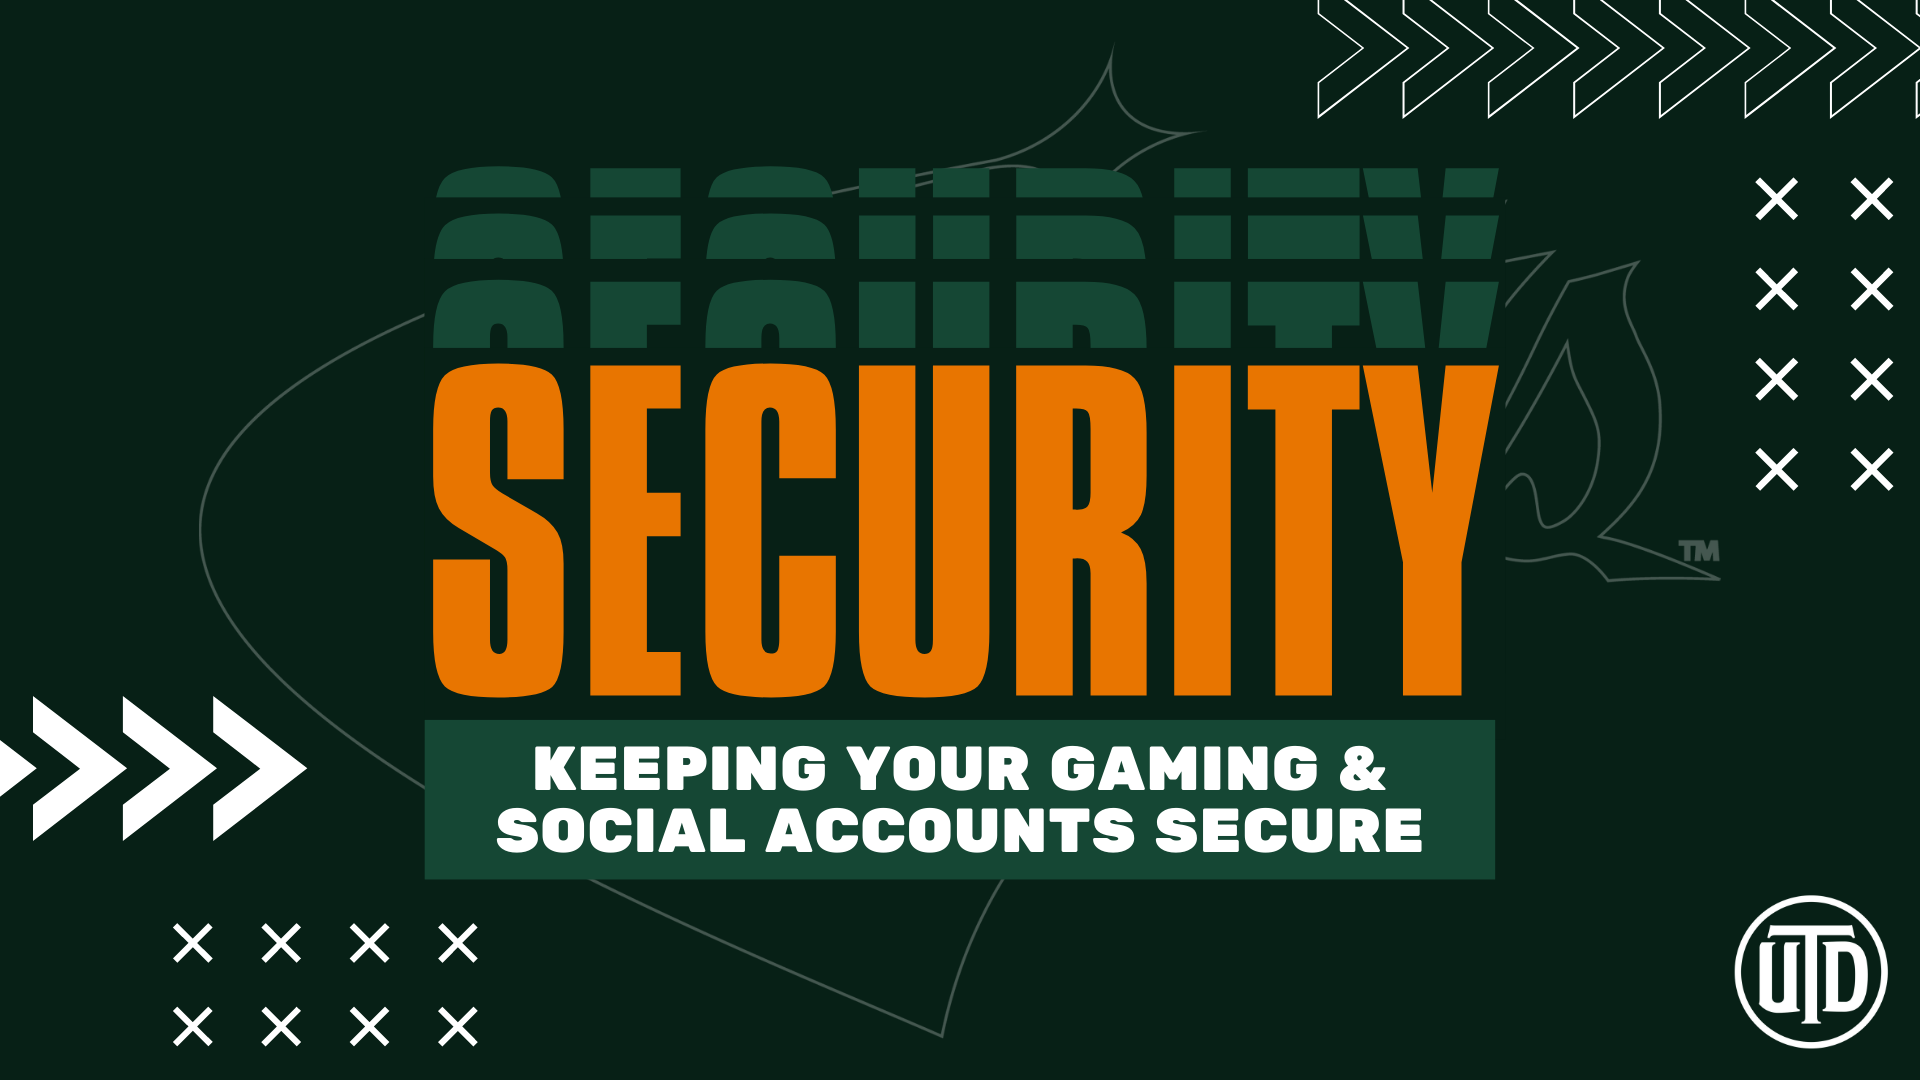 Securing Your Gaming & Social Accounts Using 2FA, Password Managers, & Healthy Habits